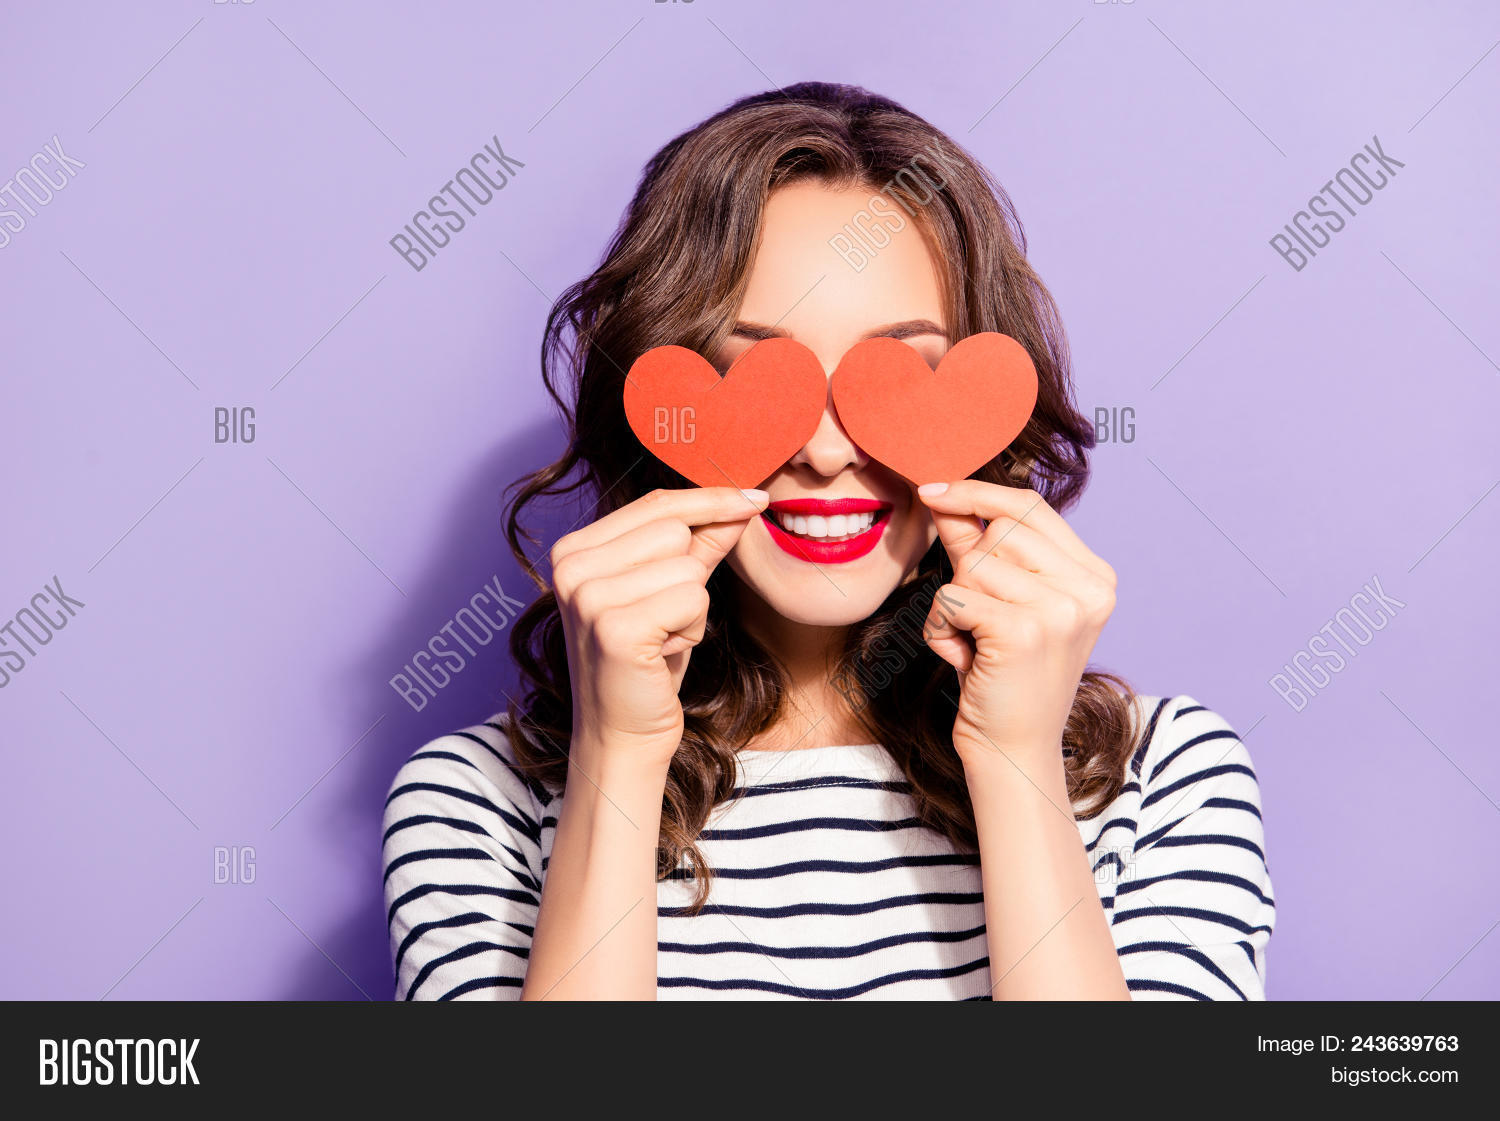 14-february,affection,beaming,beautiful,curls,curly,cutout,day,dream,emotion,eyes,face,fashion,feelings,female,figure,gesture,girl,girlfriend,glasses,hair,hairstyle,hands,happy,heart,hold,holiday,joy,lilac,lips,love,lovely,lover,make,model,red,shadow,shape,show,sign,smile,spectacles,striped,symbol,trendy,two,valentine,violet,woman,young